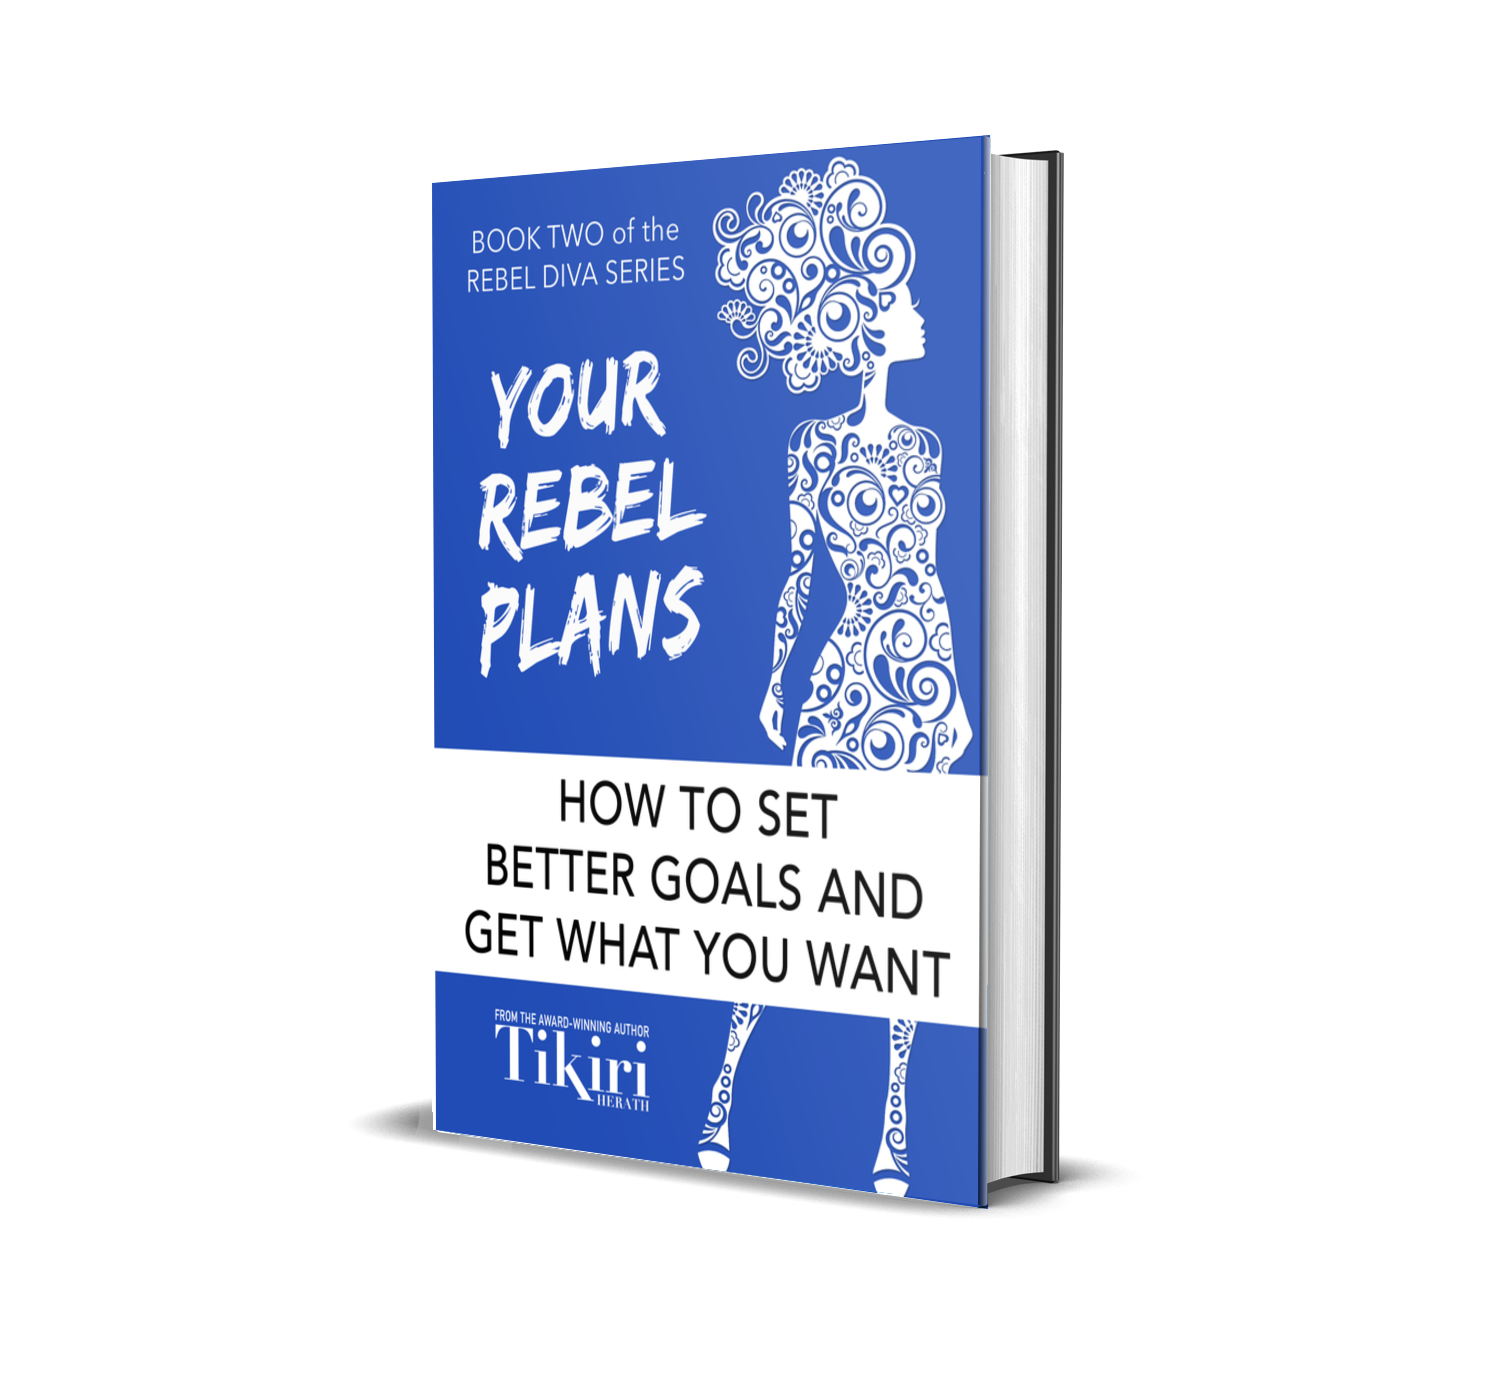 Book Two of the Rebel Diva Empowerment Series, Amazon #1 Best Release, Your Rebel Plans by Tikiri Herath